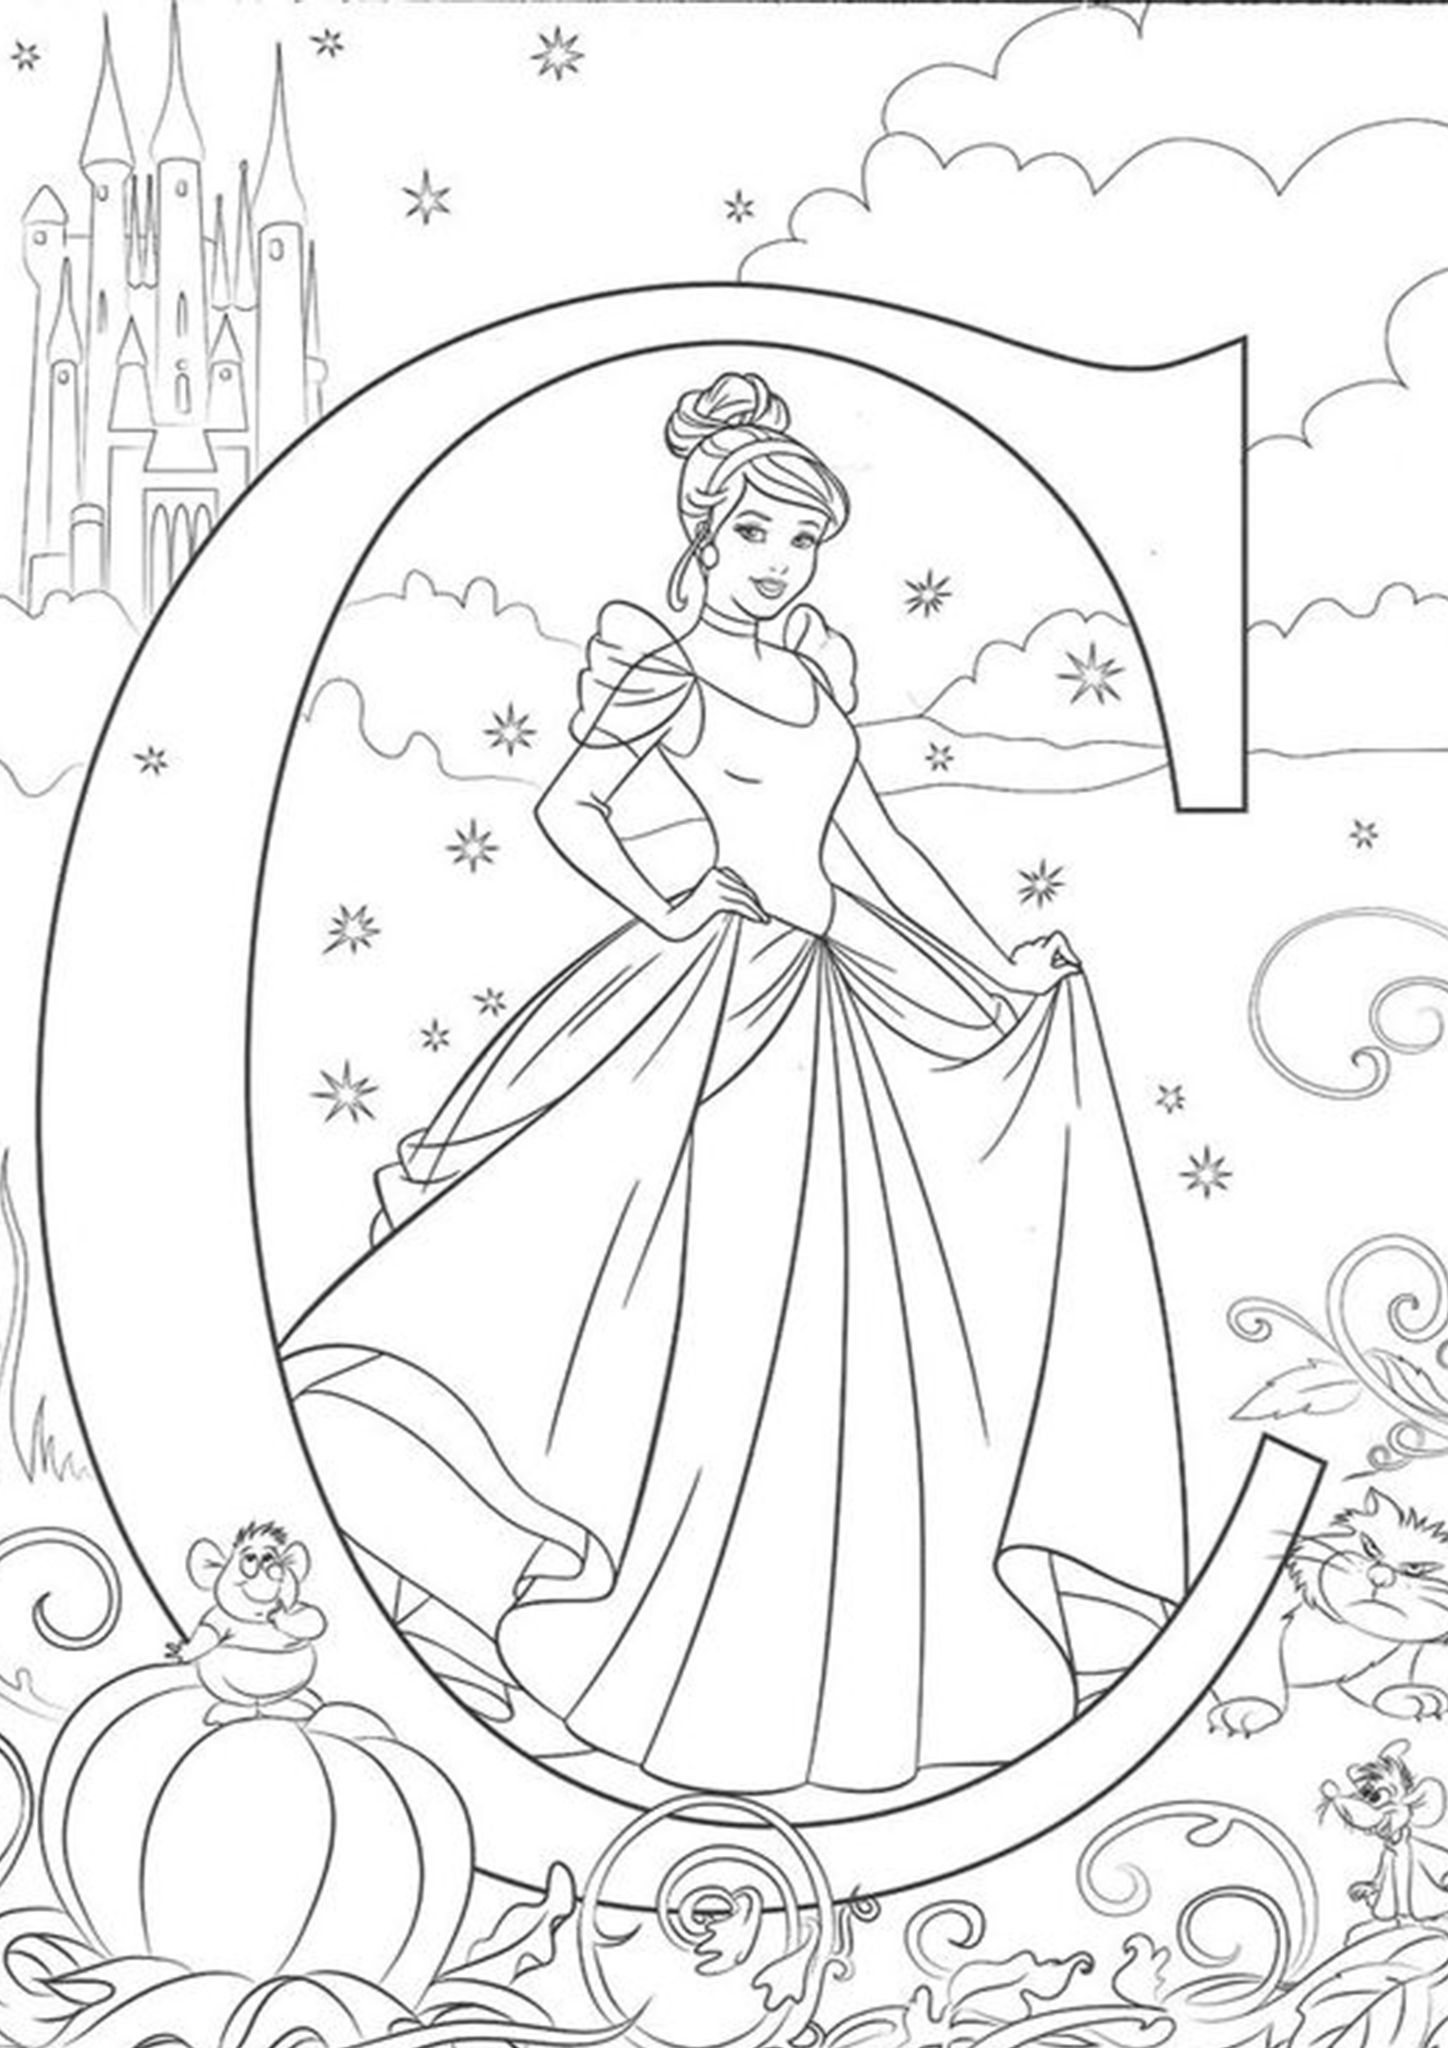 Free Printable Cinderella Coloring Pages In